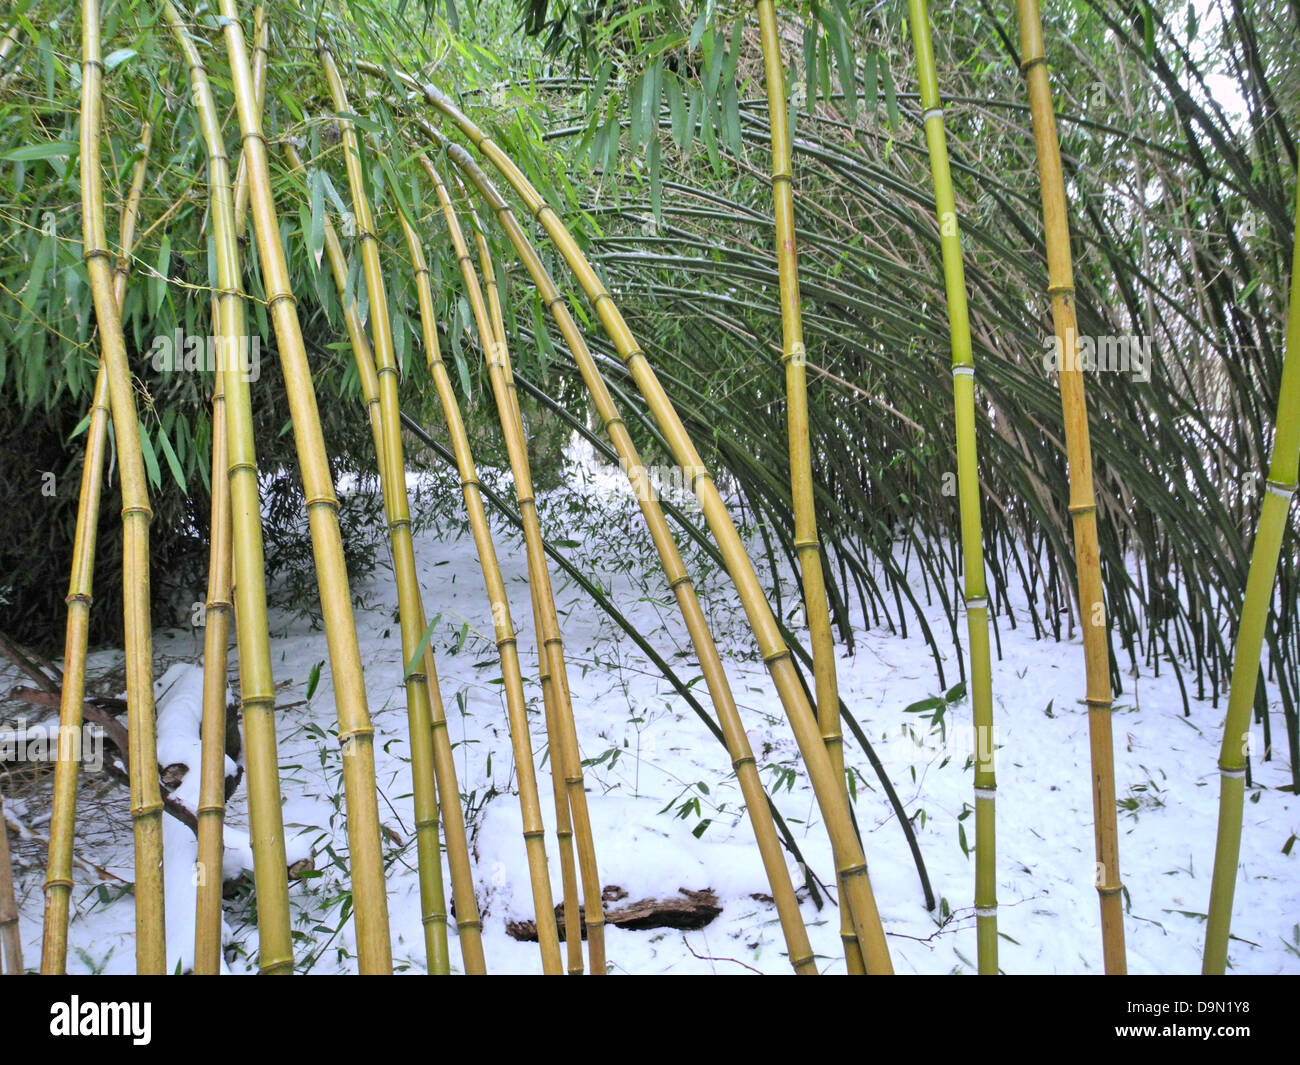 bamboo phyllostachys aureosulcata aureocaulis phyllostachys stock photo 57625548 alamy. Black Bedroom Furniture Sets. Home Design Ideas